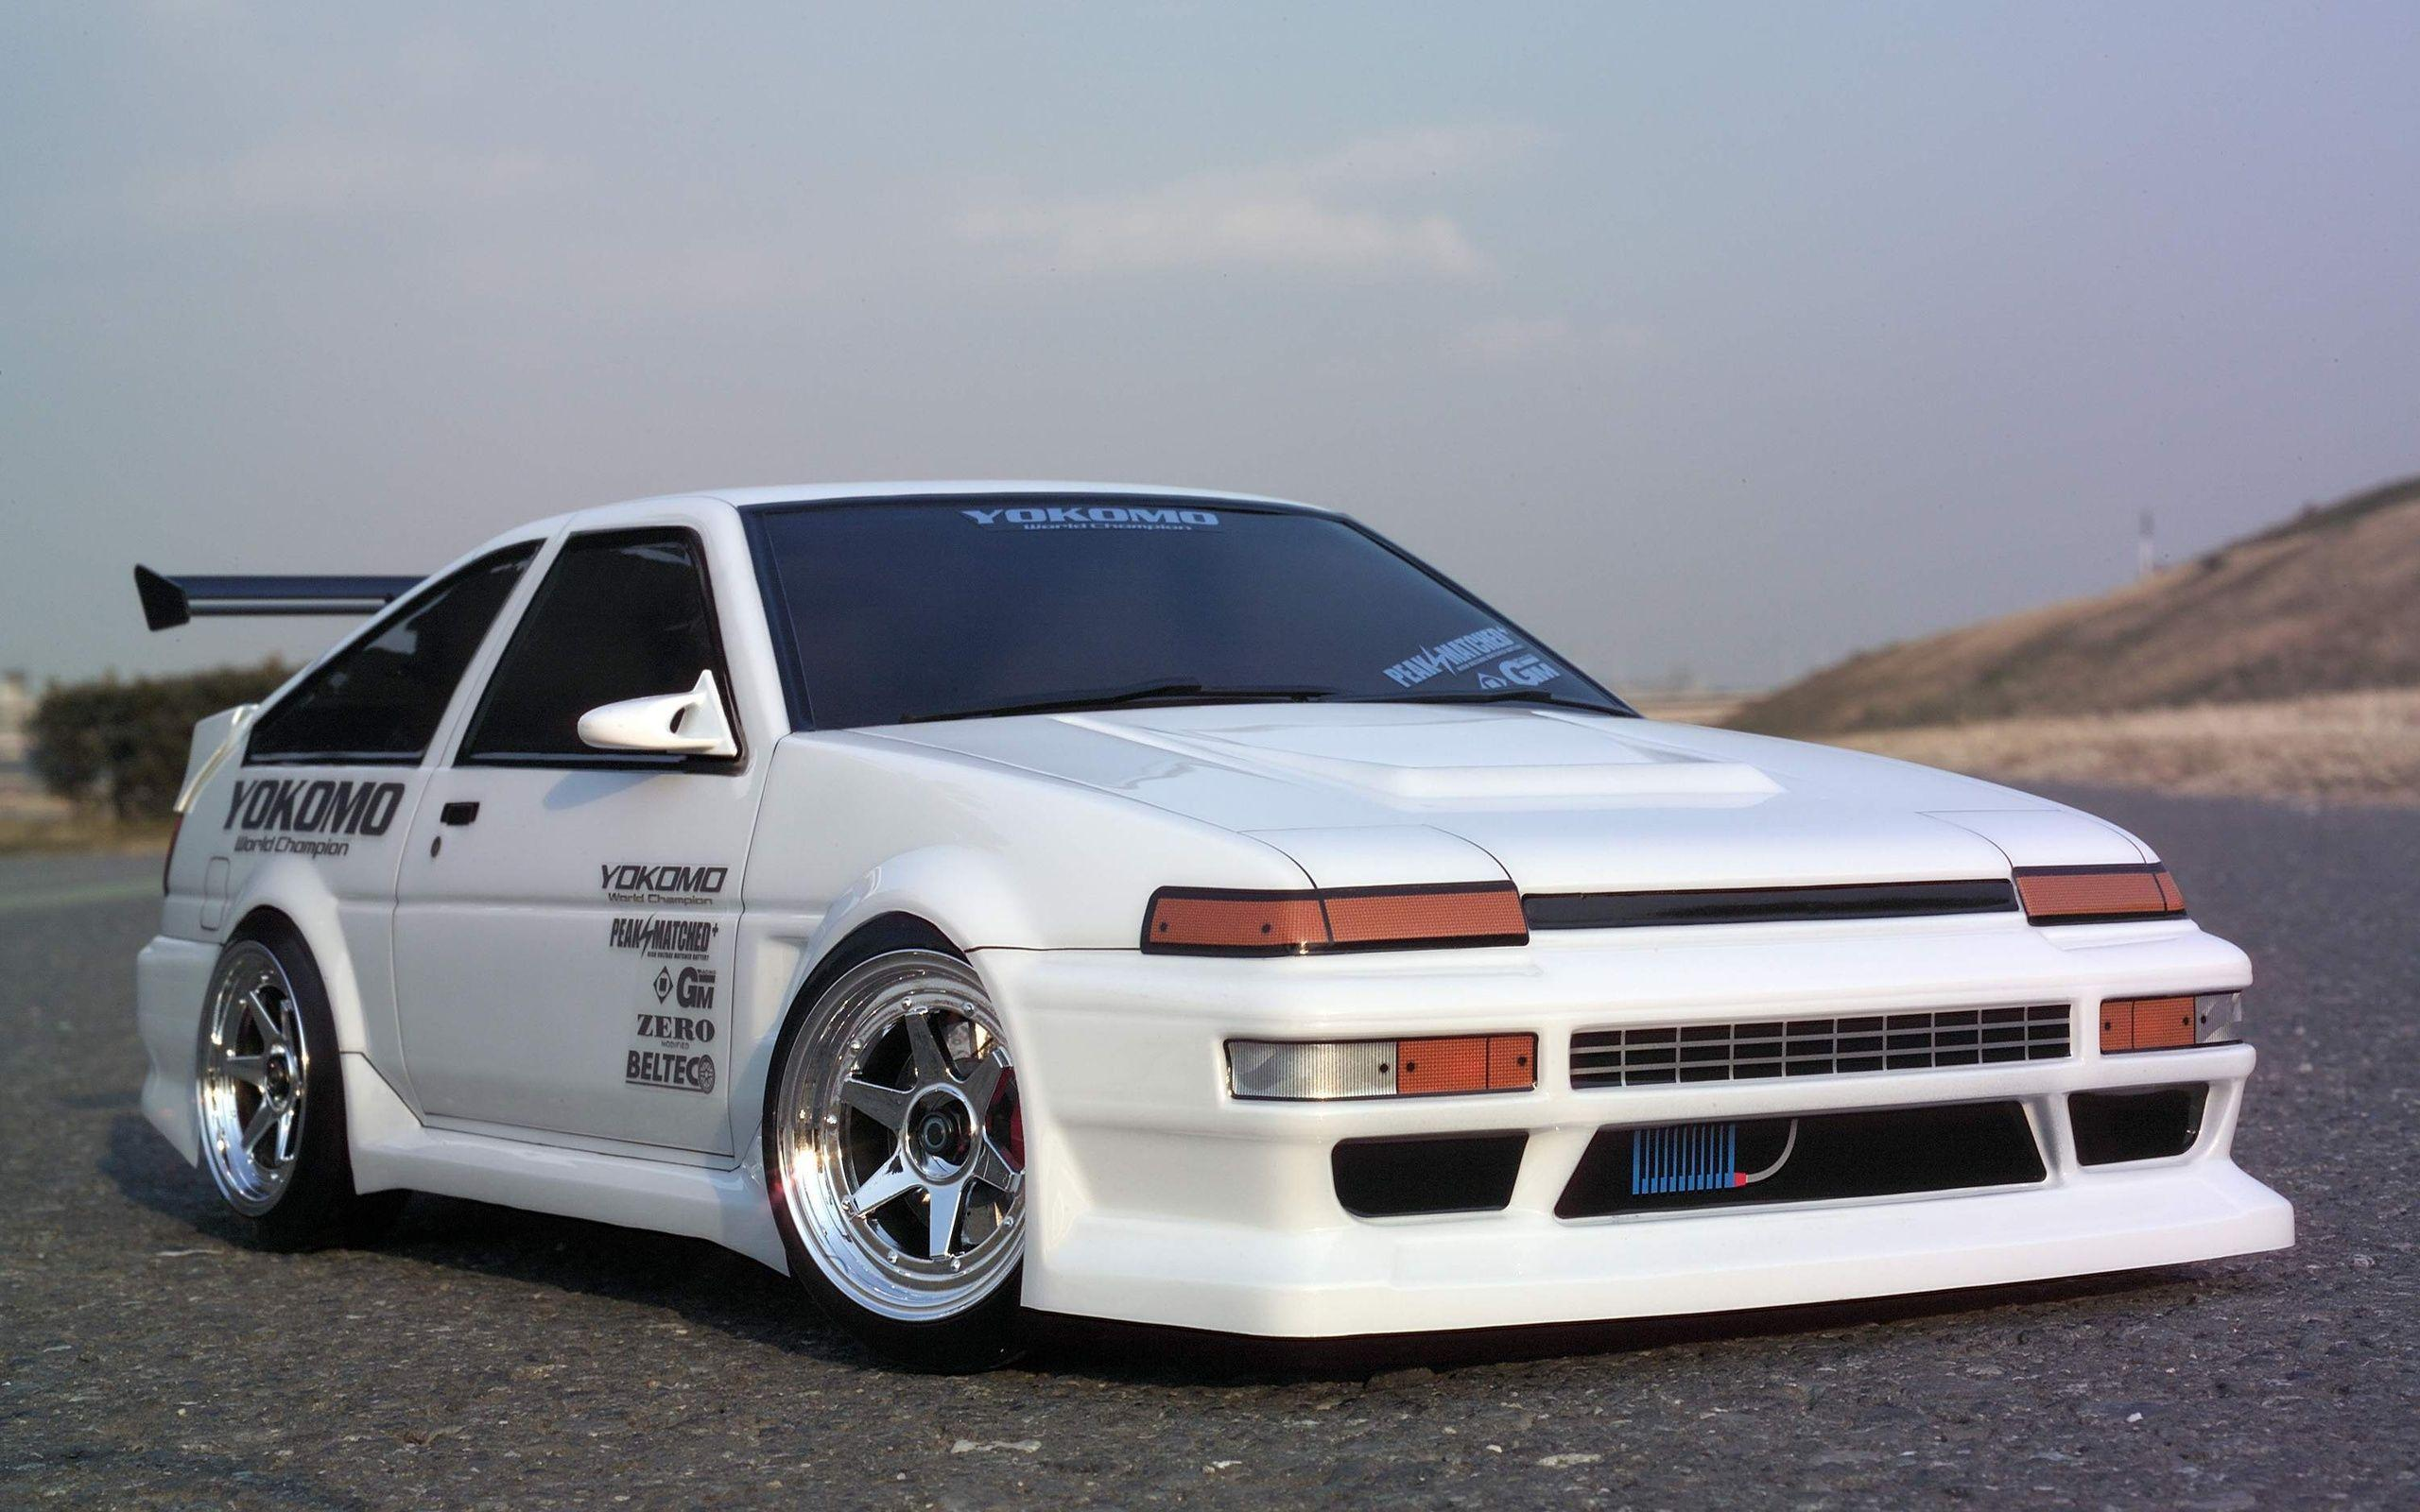 2560x1600 Toyota, Corolla, Tuning, Ae86 Wallpapers and Pictures ...